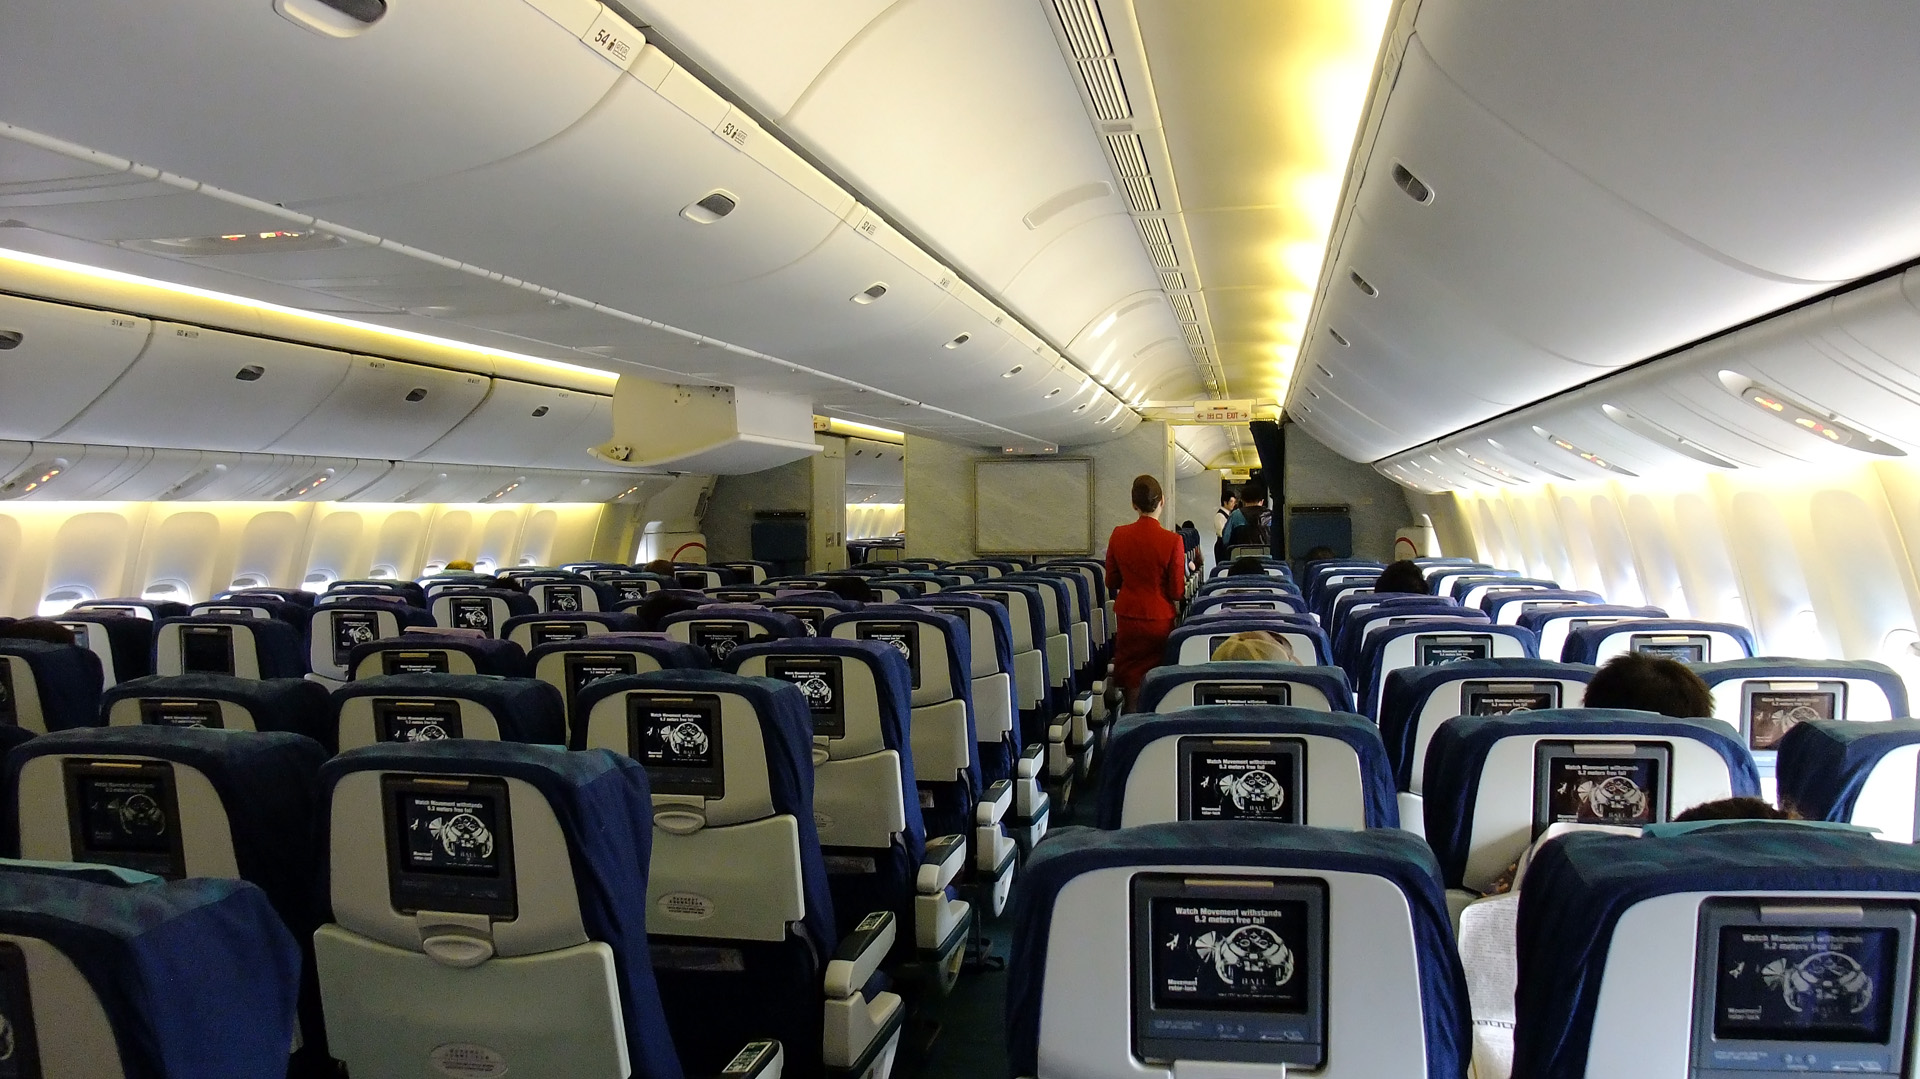 Airplane Travel Is Full Of Germs: Microbiologist Finds ...